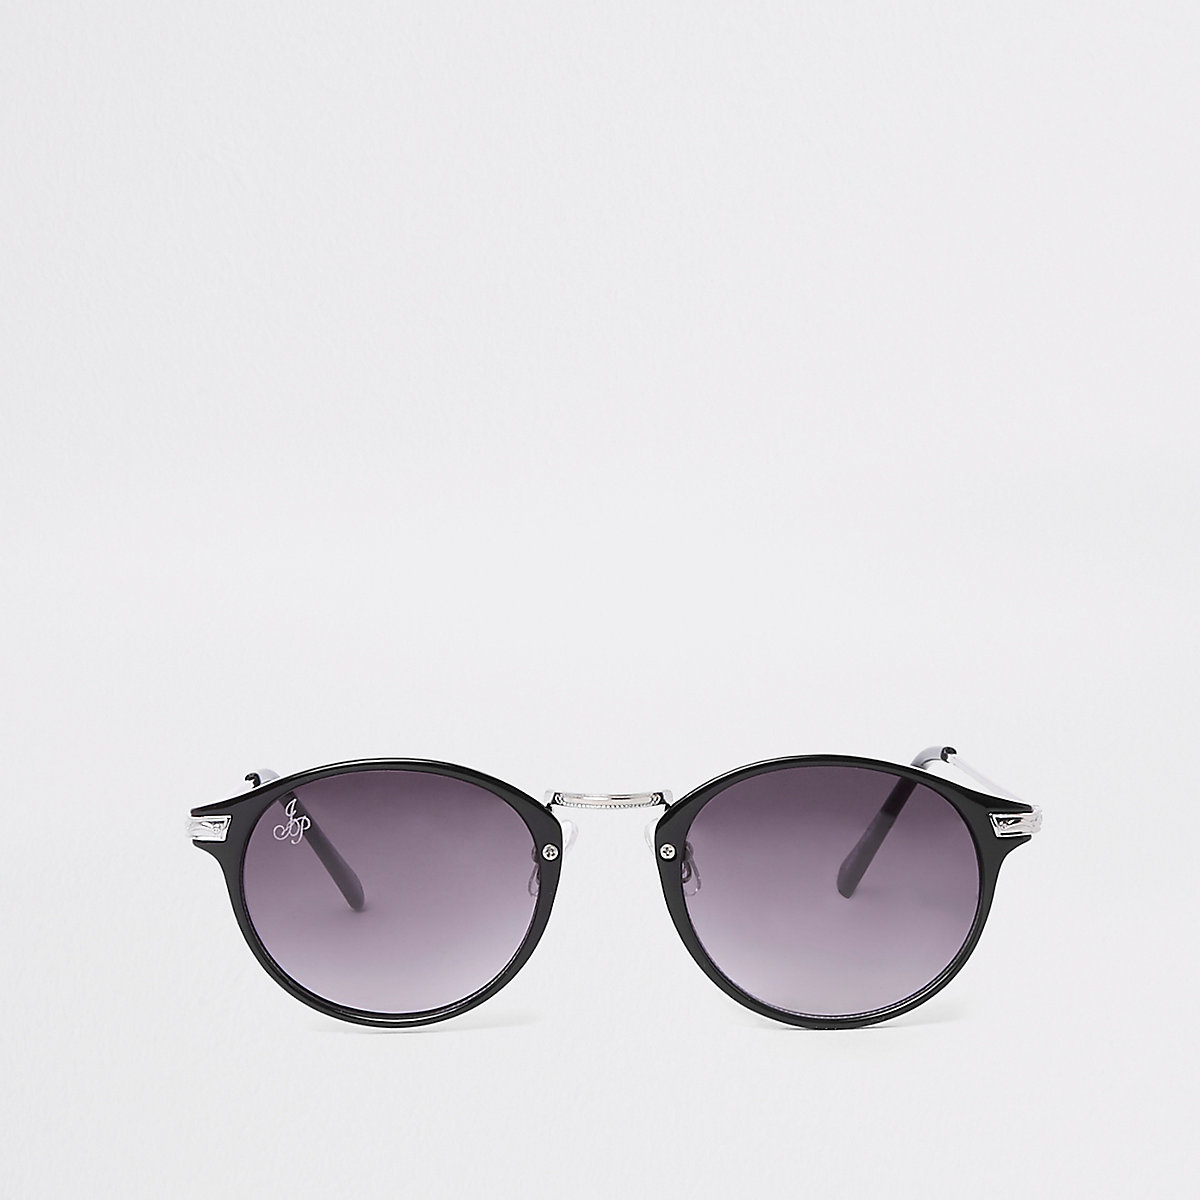 Jeepers Peepers black round sunglasses